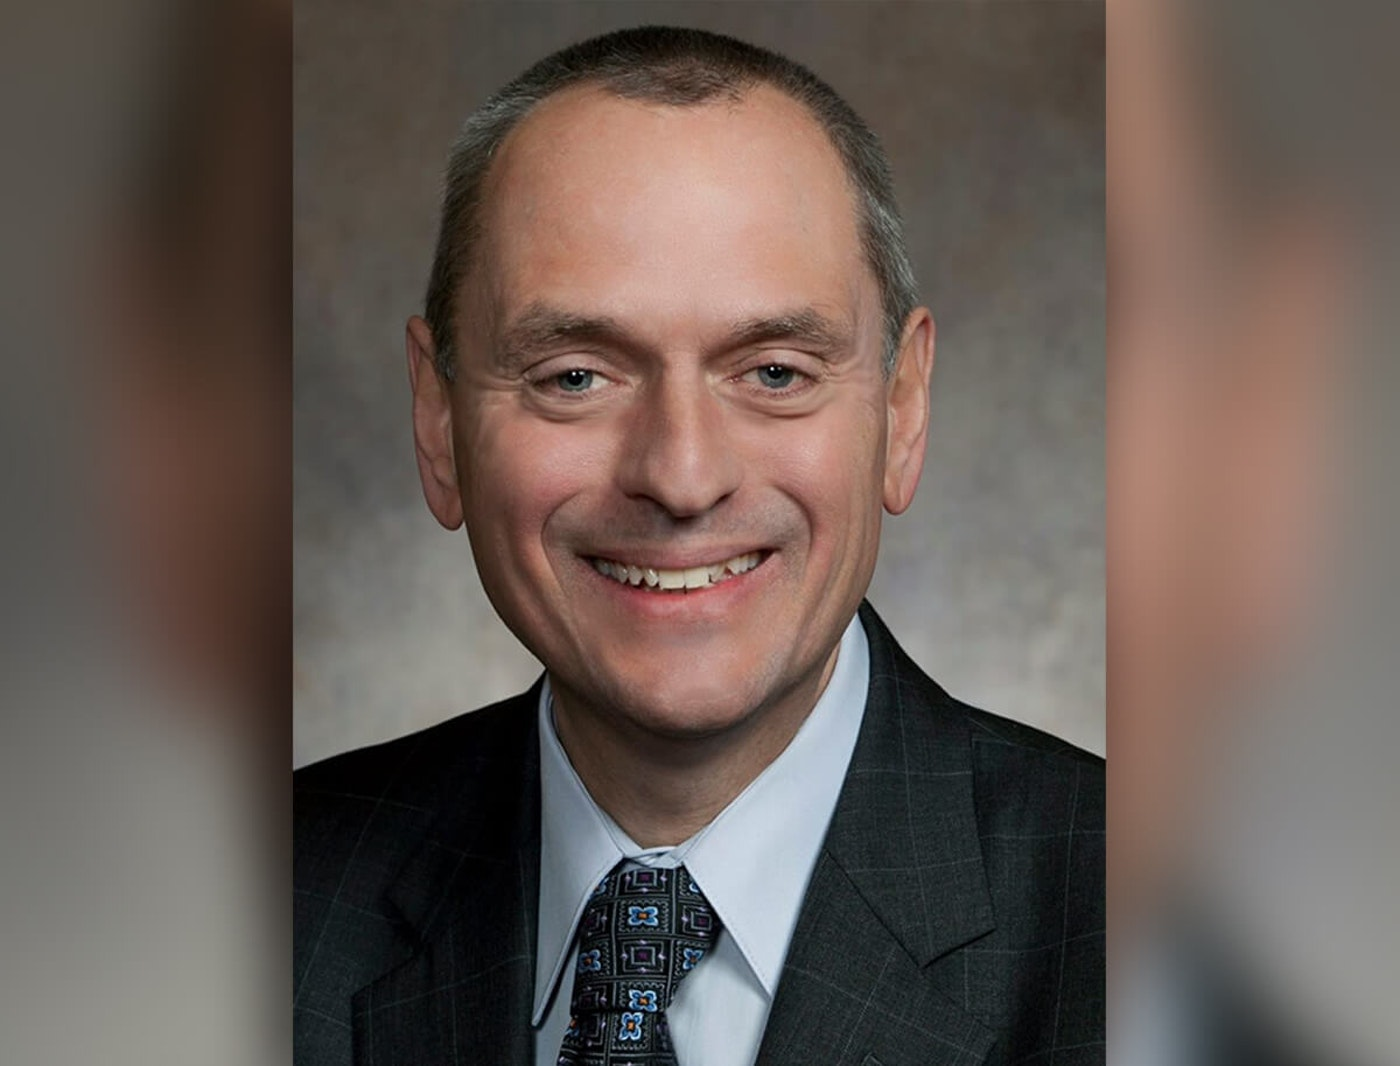 Rep. Joe Sanfelippo (R-New Berlin) is vice chair of the Assembly's Committee on Campaigns and Elections.